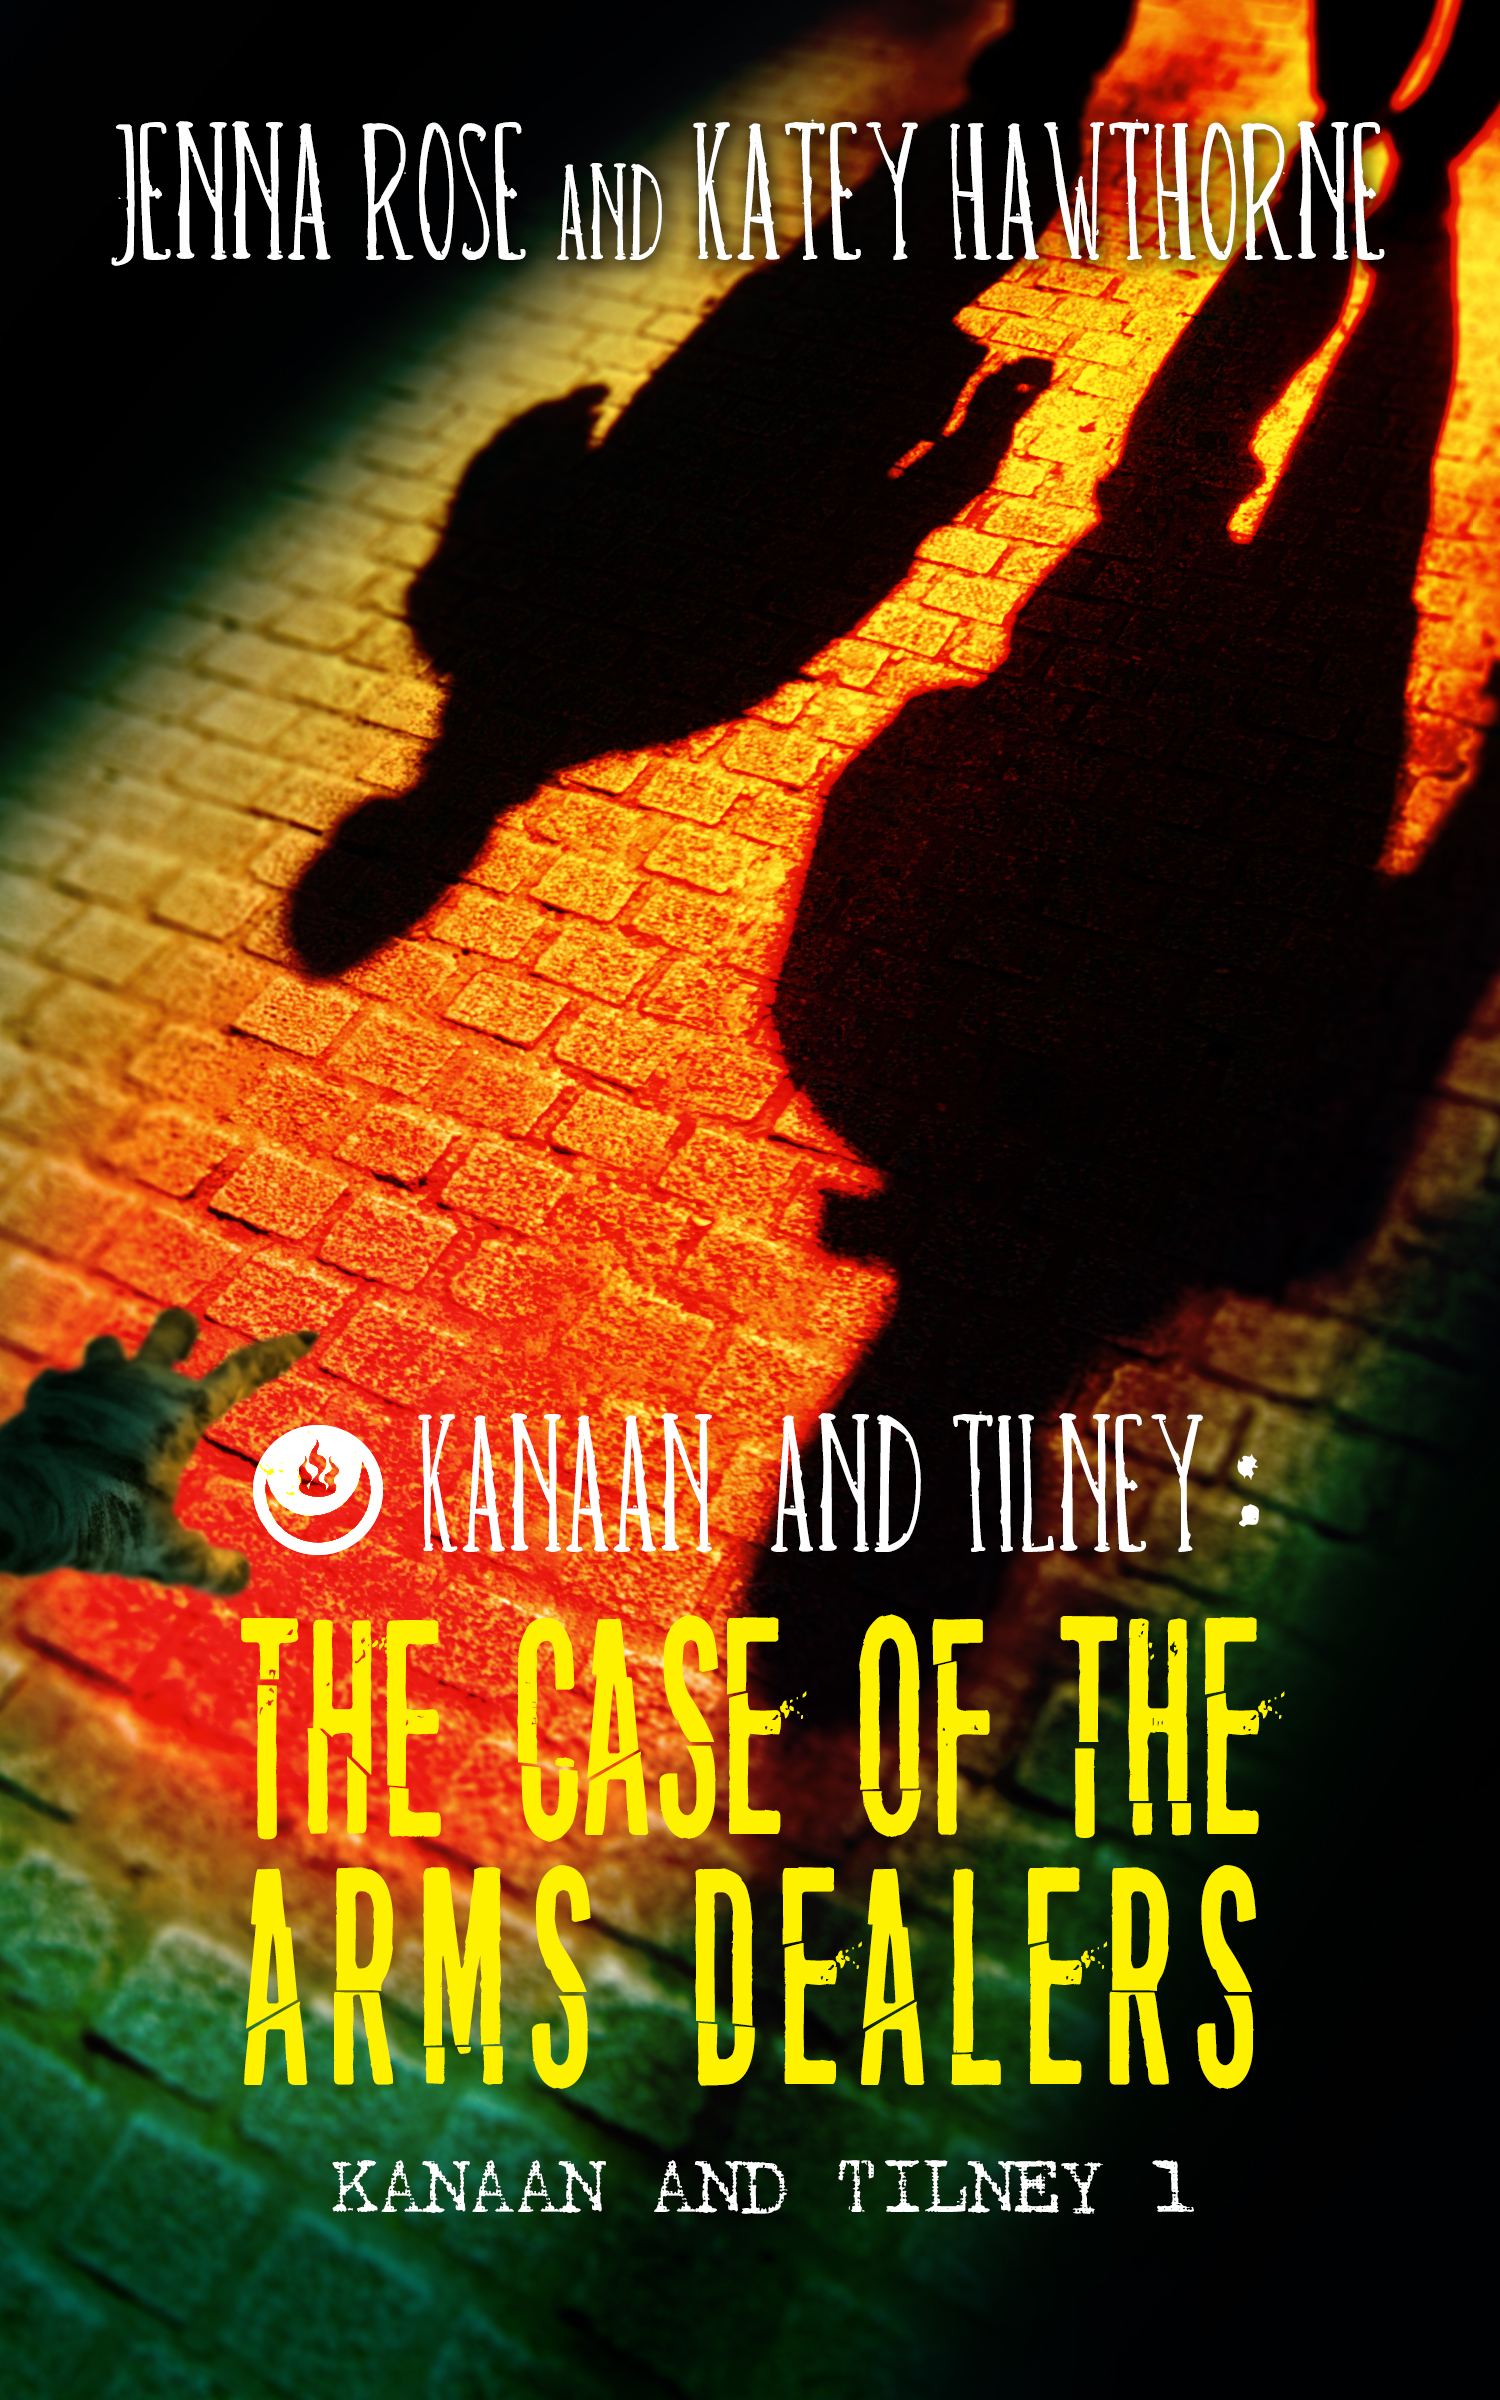 Guest Post and Giveaway: Kanaan & Tilney: The Case of the Arms Dealers by Jenna Rose and Katey Hawthorne